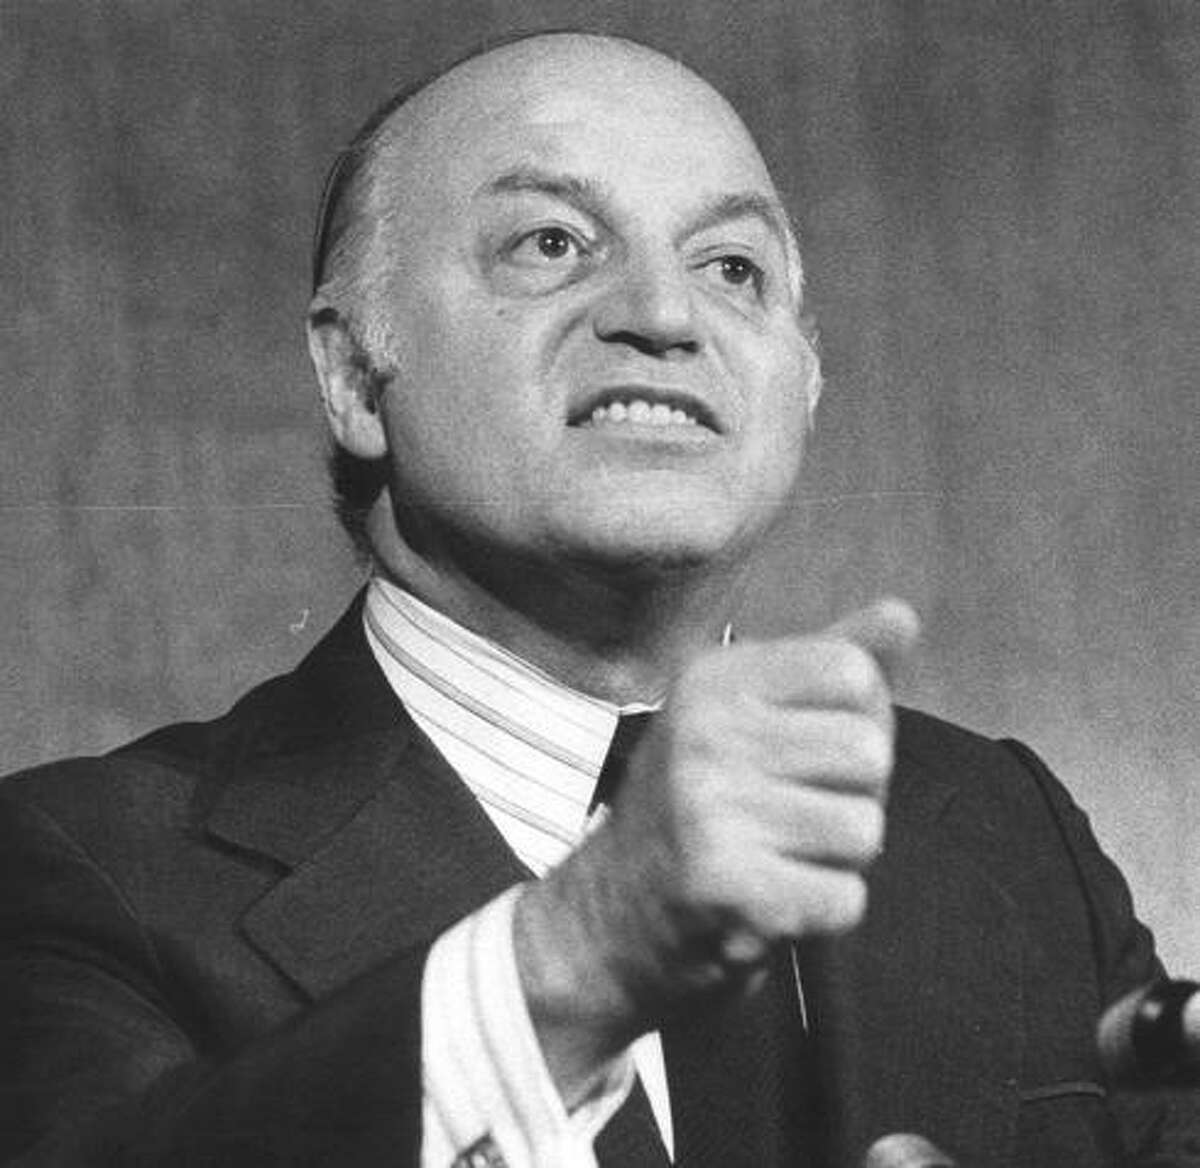 Mayor Joseph Alioto declined to limit police use of force in 1968.